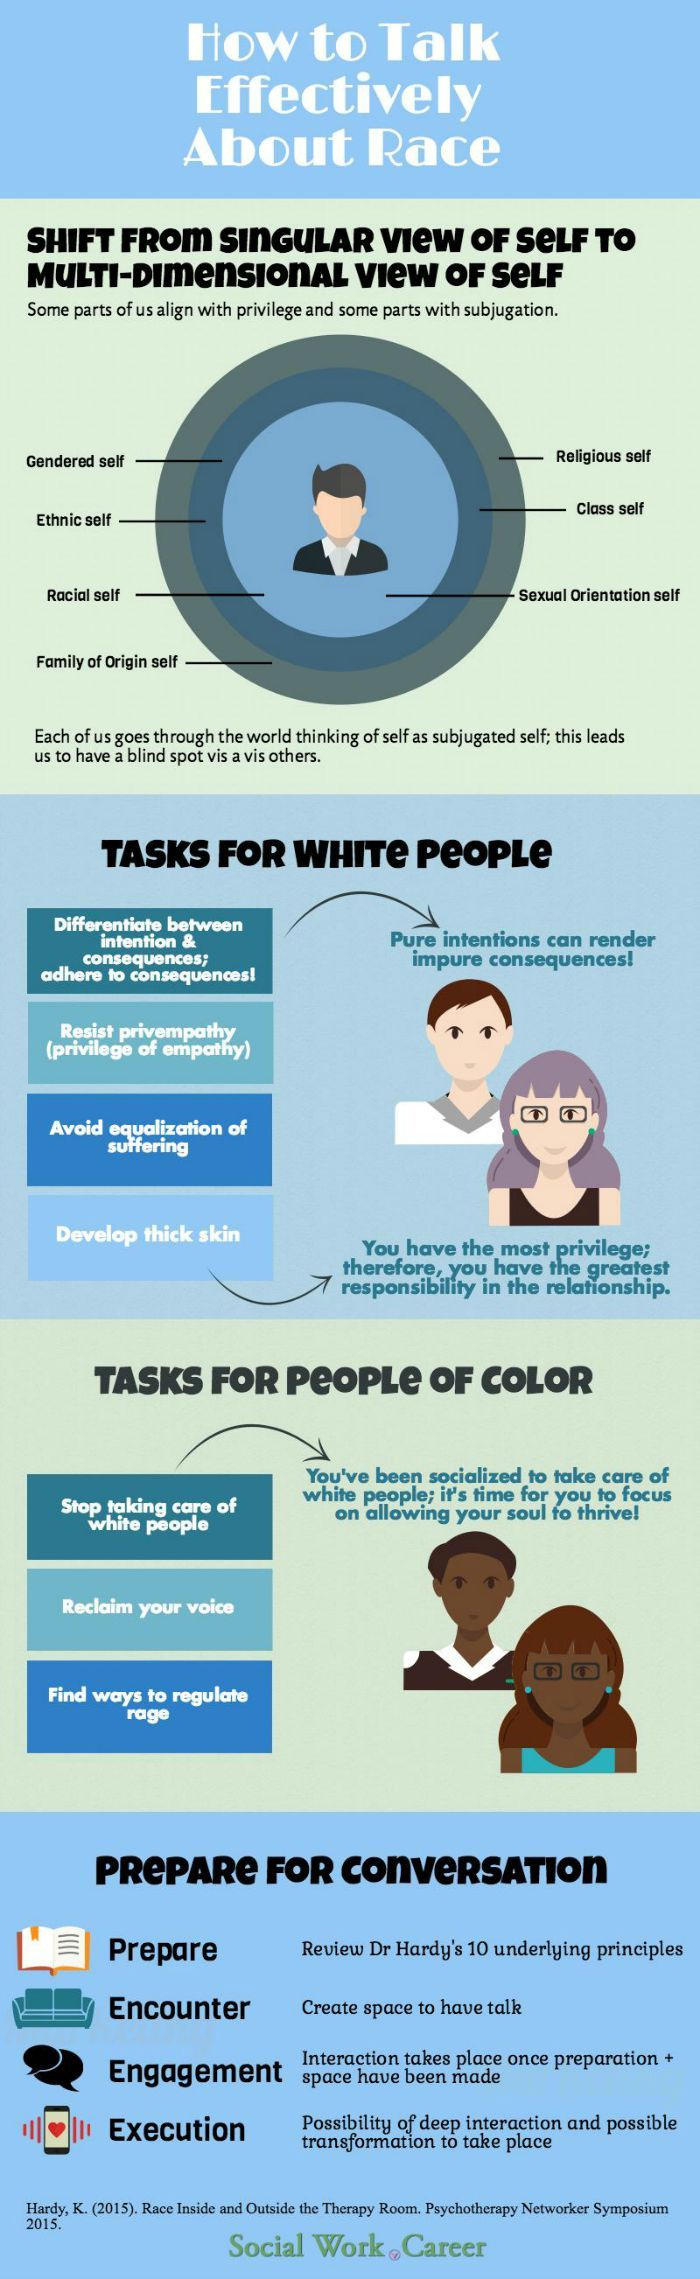 Racism: The Challenge for Social Workers